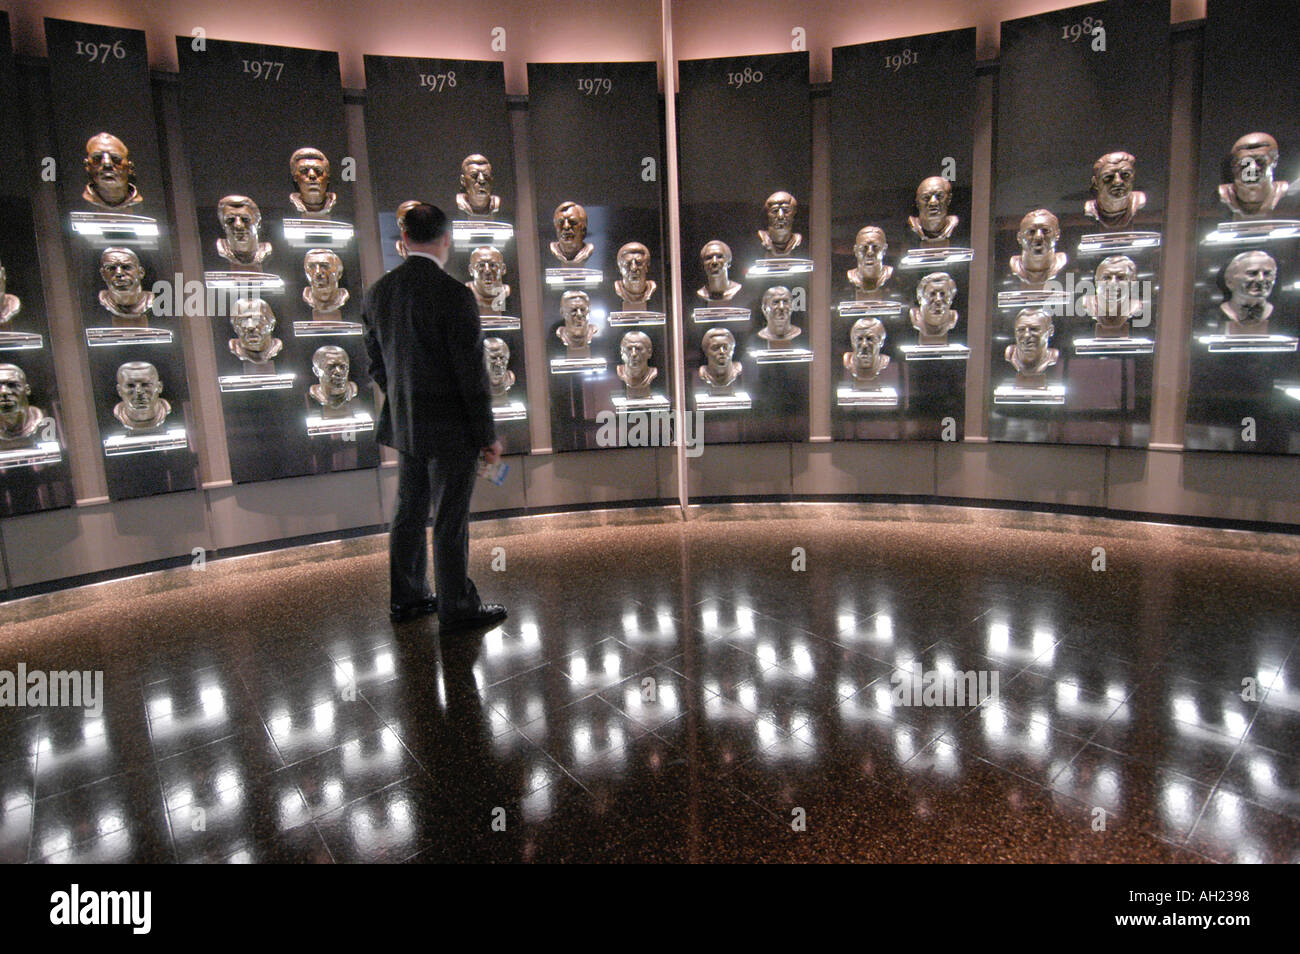 Professional Football Hall of Fame Canton Ohio - Stock Image